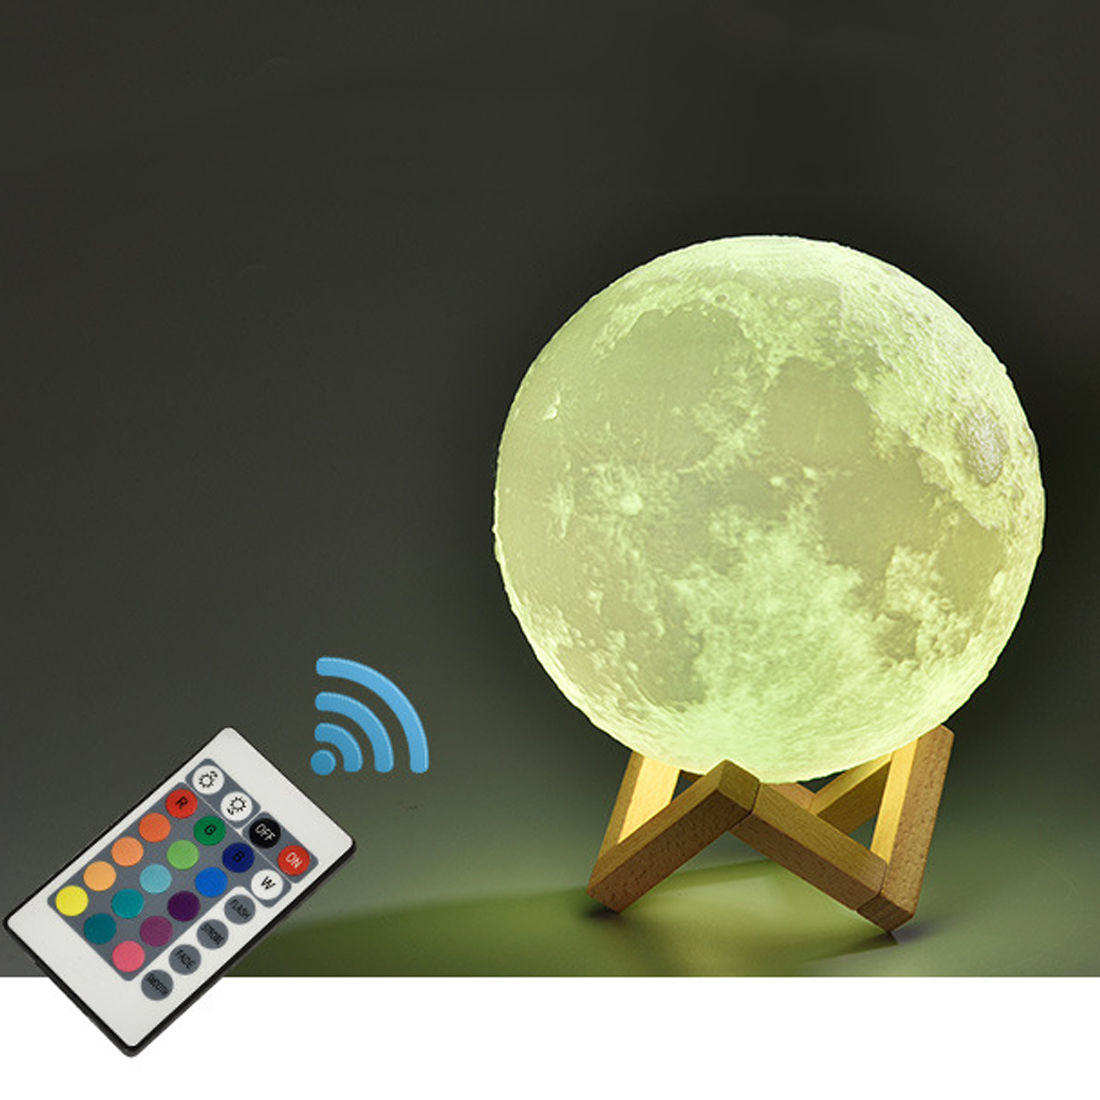 16 Color Change 3D Print Lamp Moon Bedroom Bookcase Night Light 3D Light Touch Switch Creative Gifts Rechargeable Moon Lamp цена